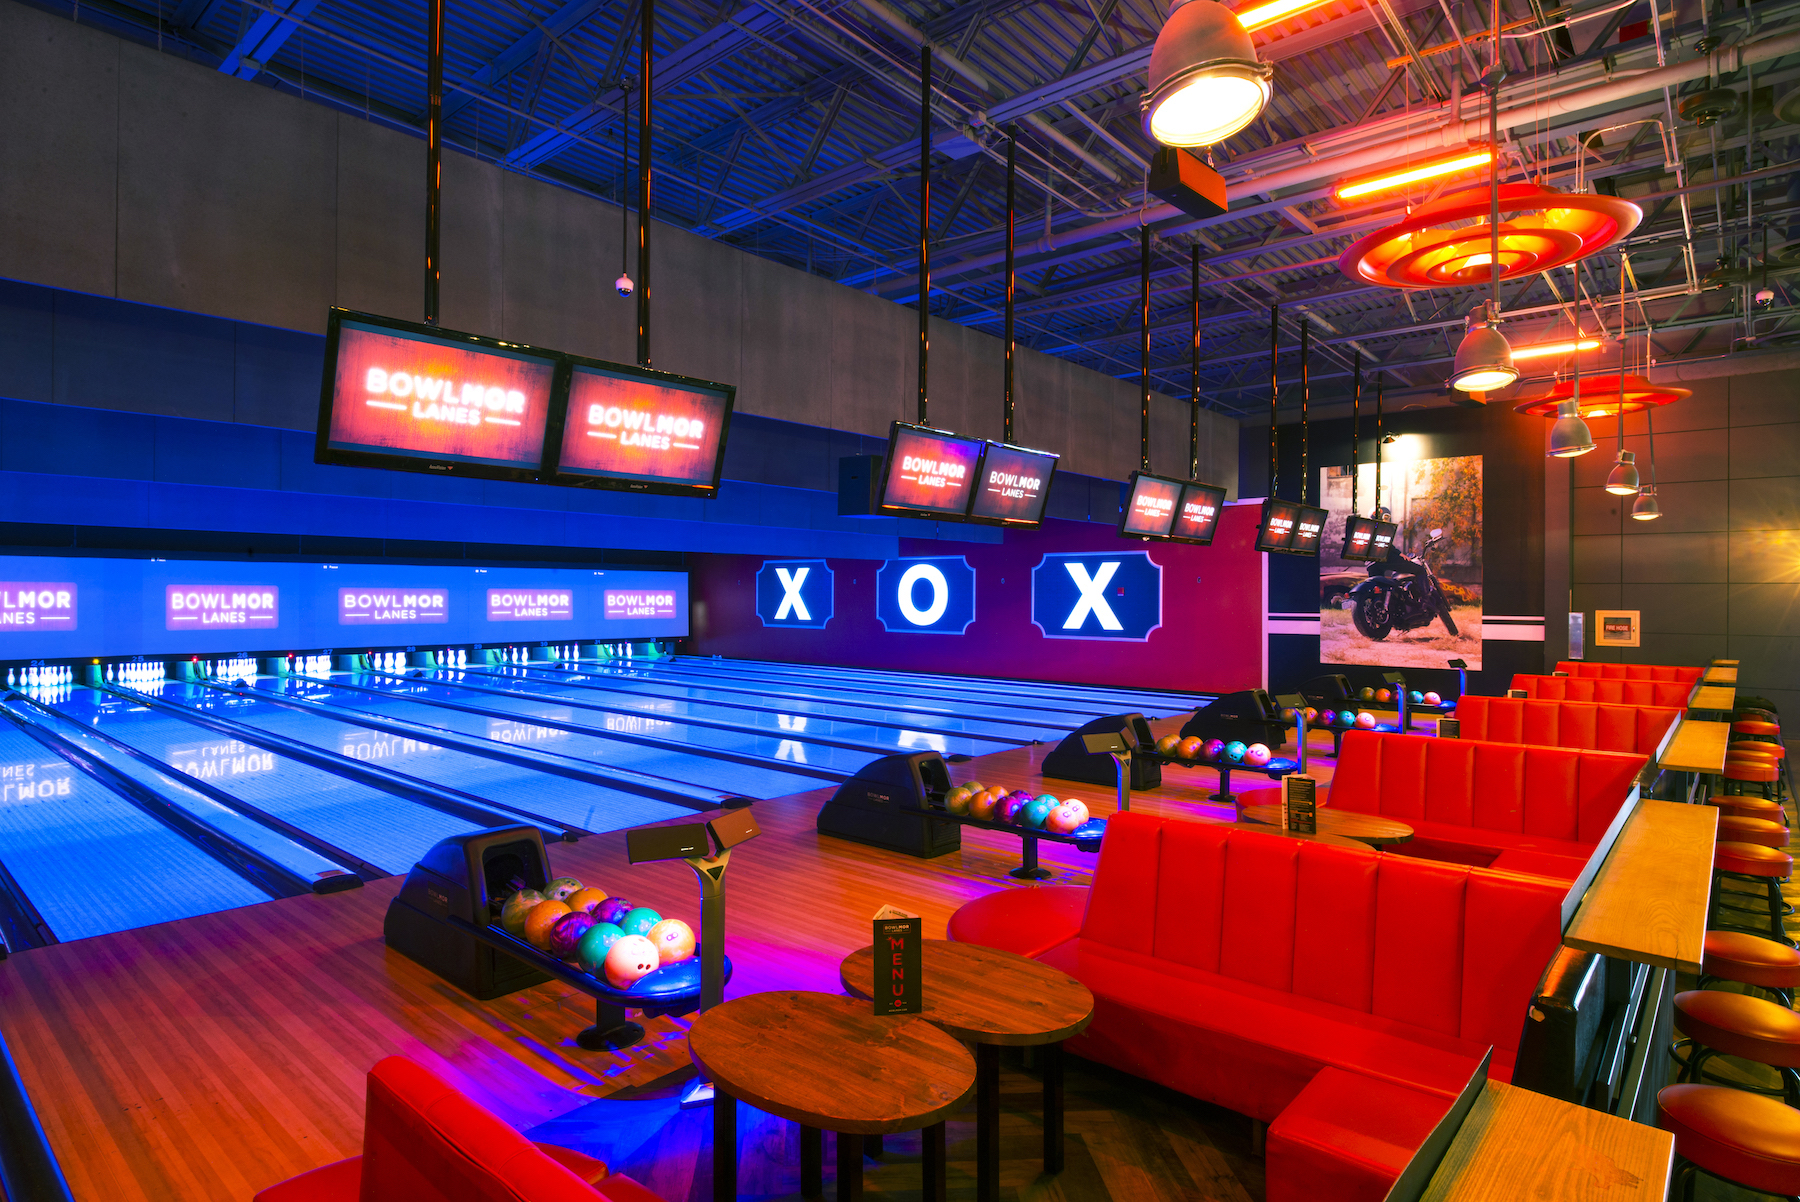 The Kingpin event space at Bowlmor Long Island in New York City, NYC, NY/NJ Area